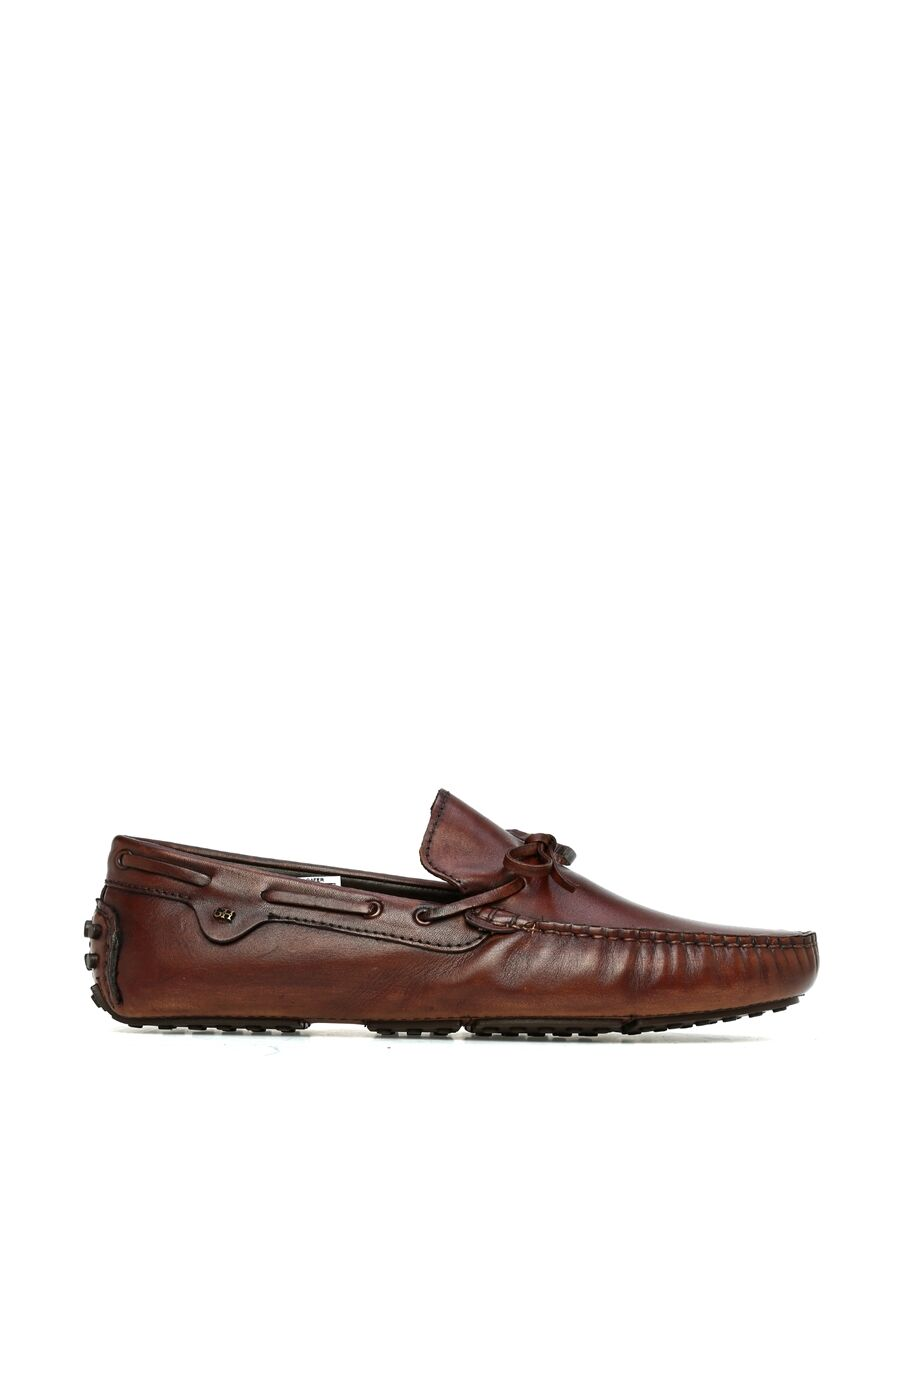 George Hogg Taba Loafer – 597.0 TL